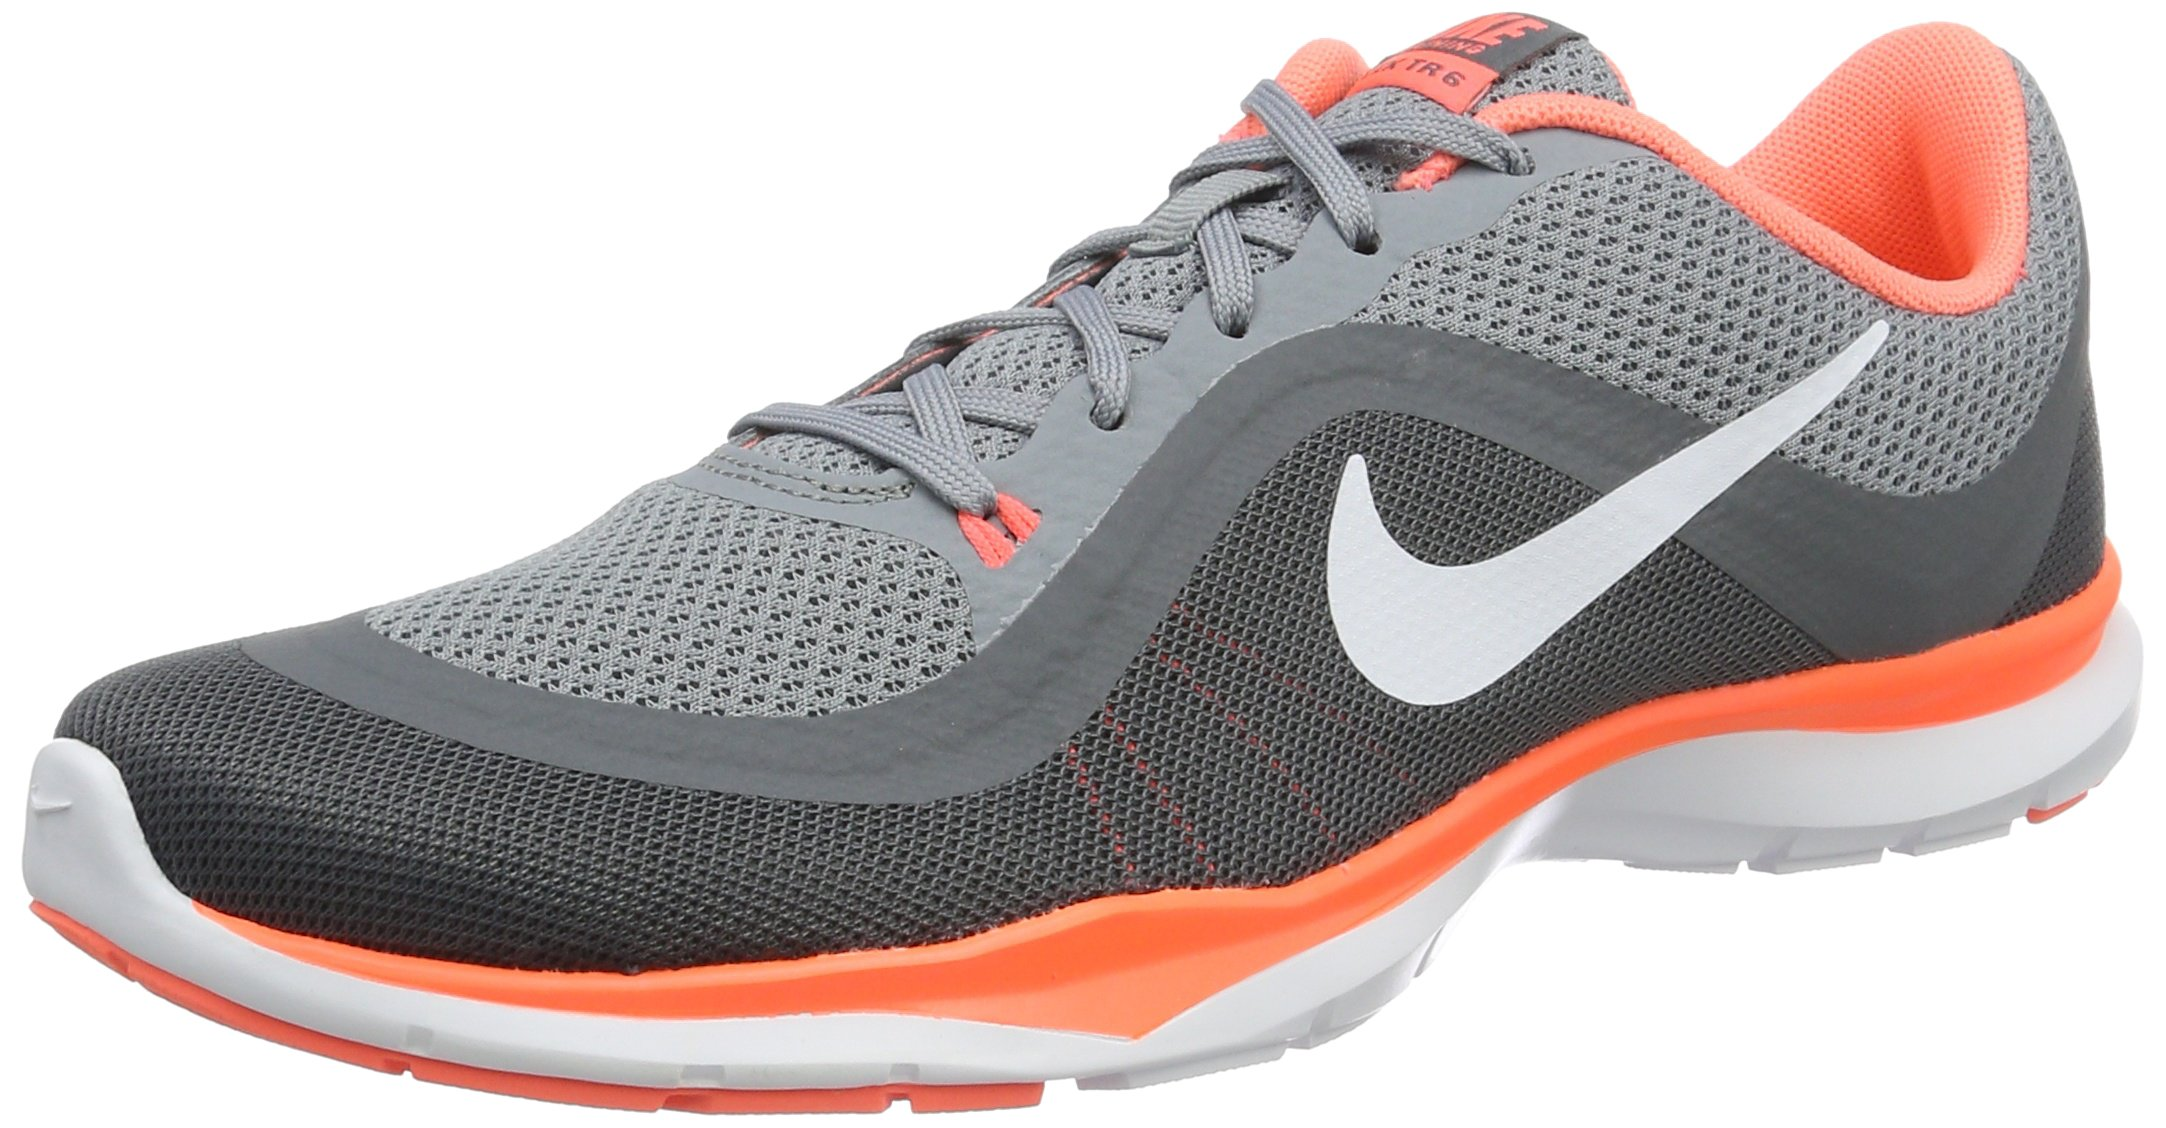 Nike Women's Flex Trainer 6 Training Shoe Stealth/White/Bright Mango/Cool Grey Size 9 M US